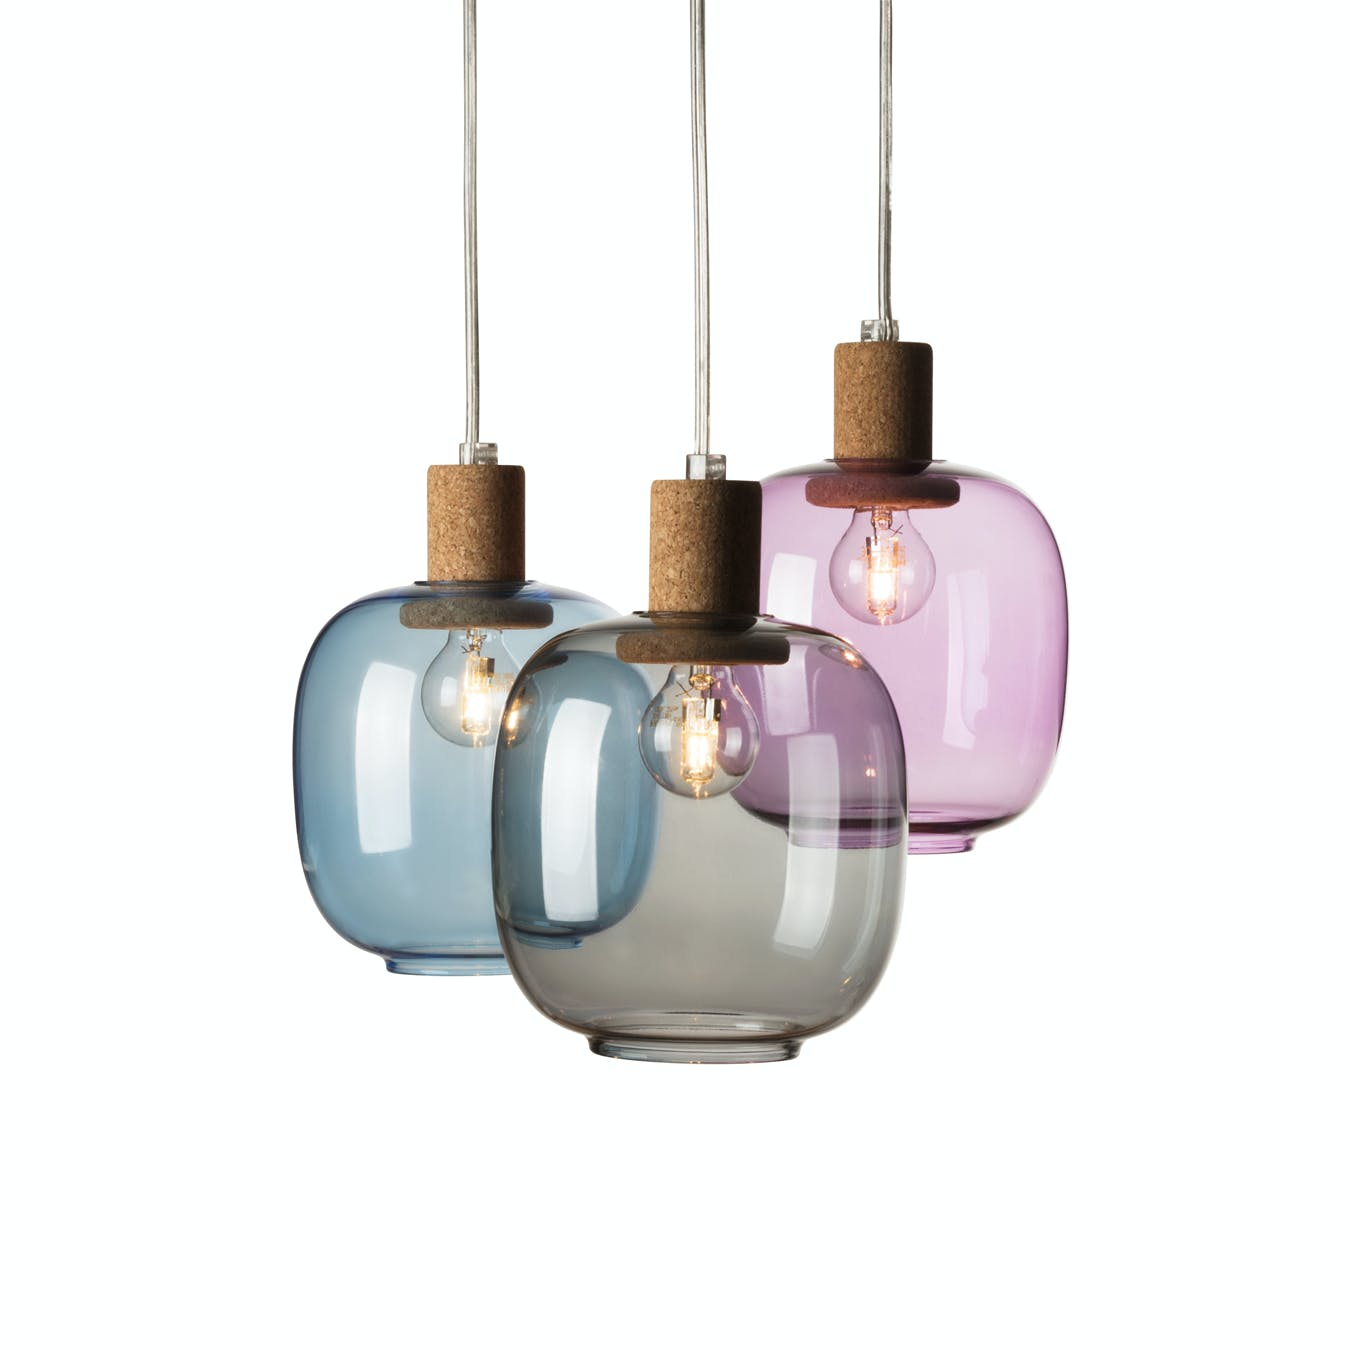 Picia Pendant Lamp in Purple